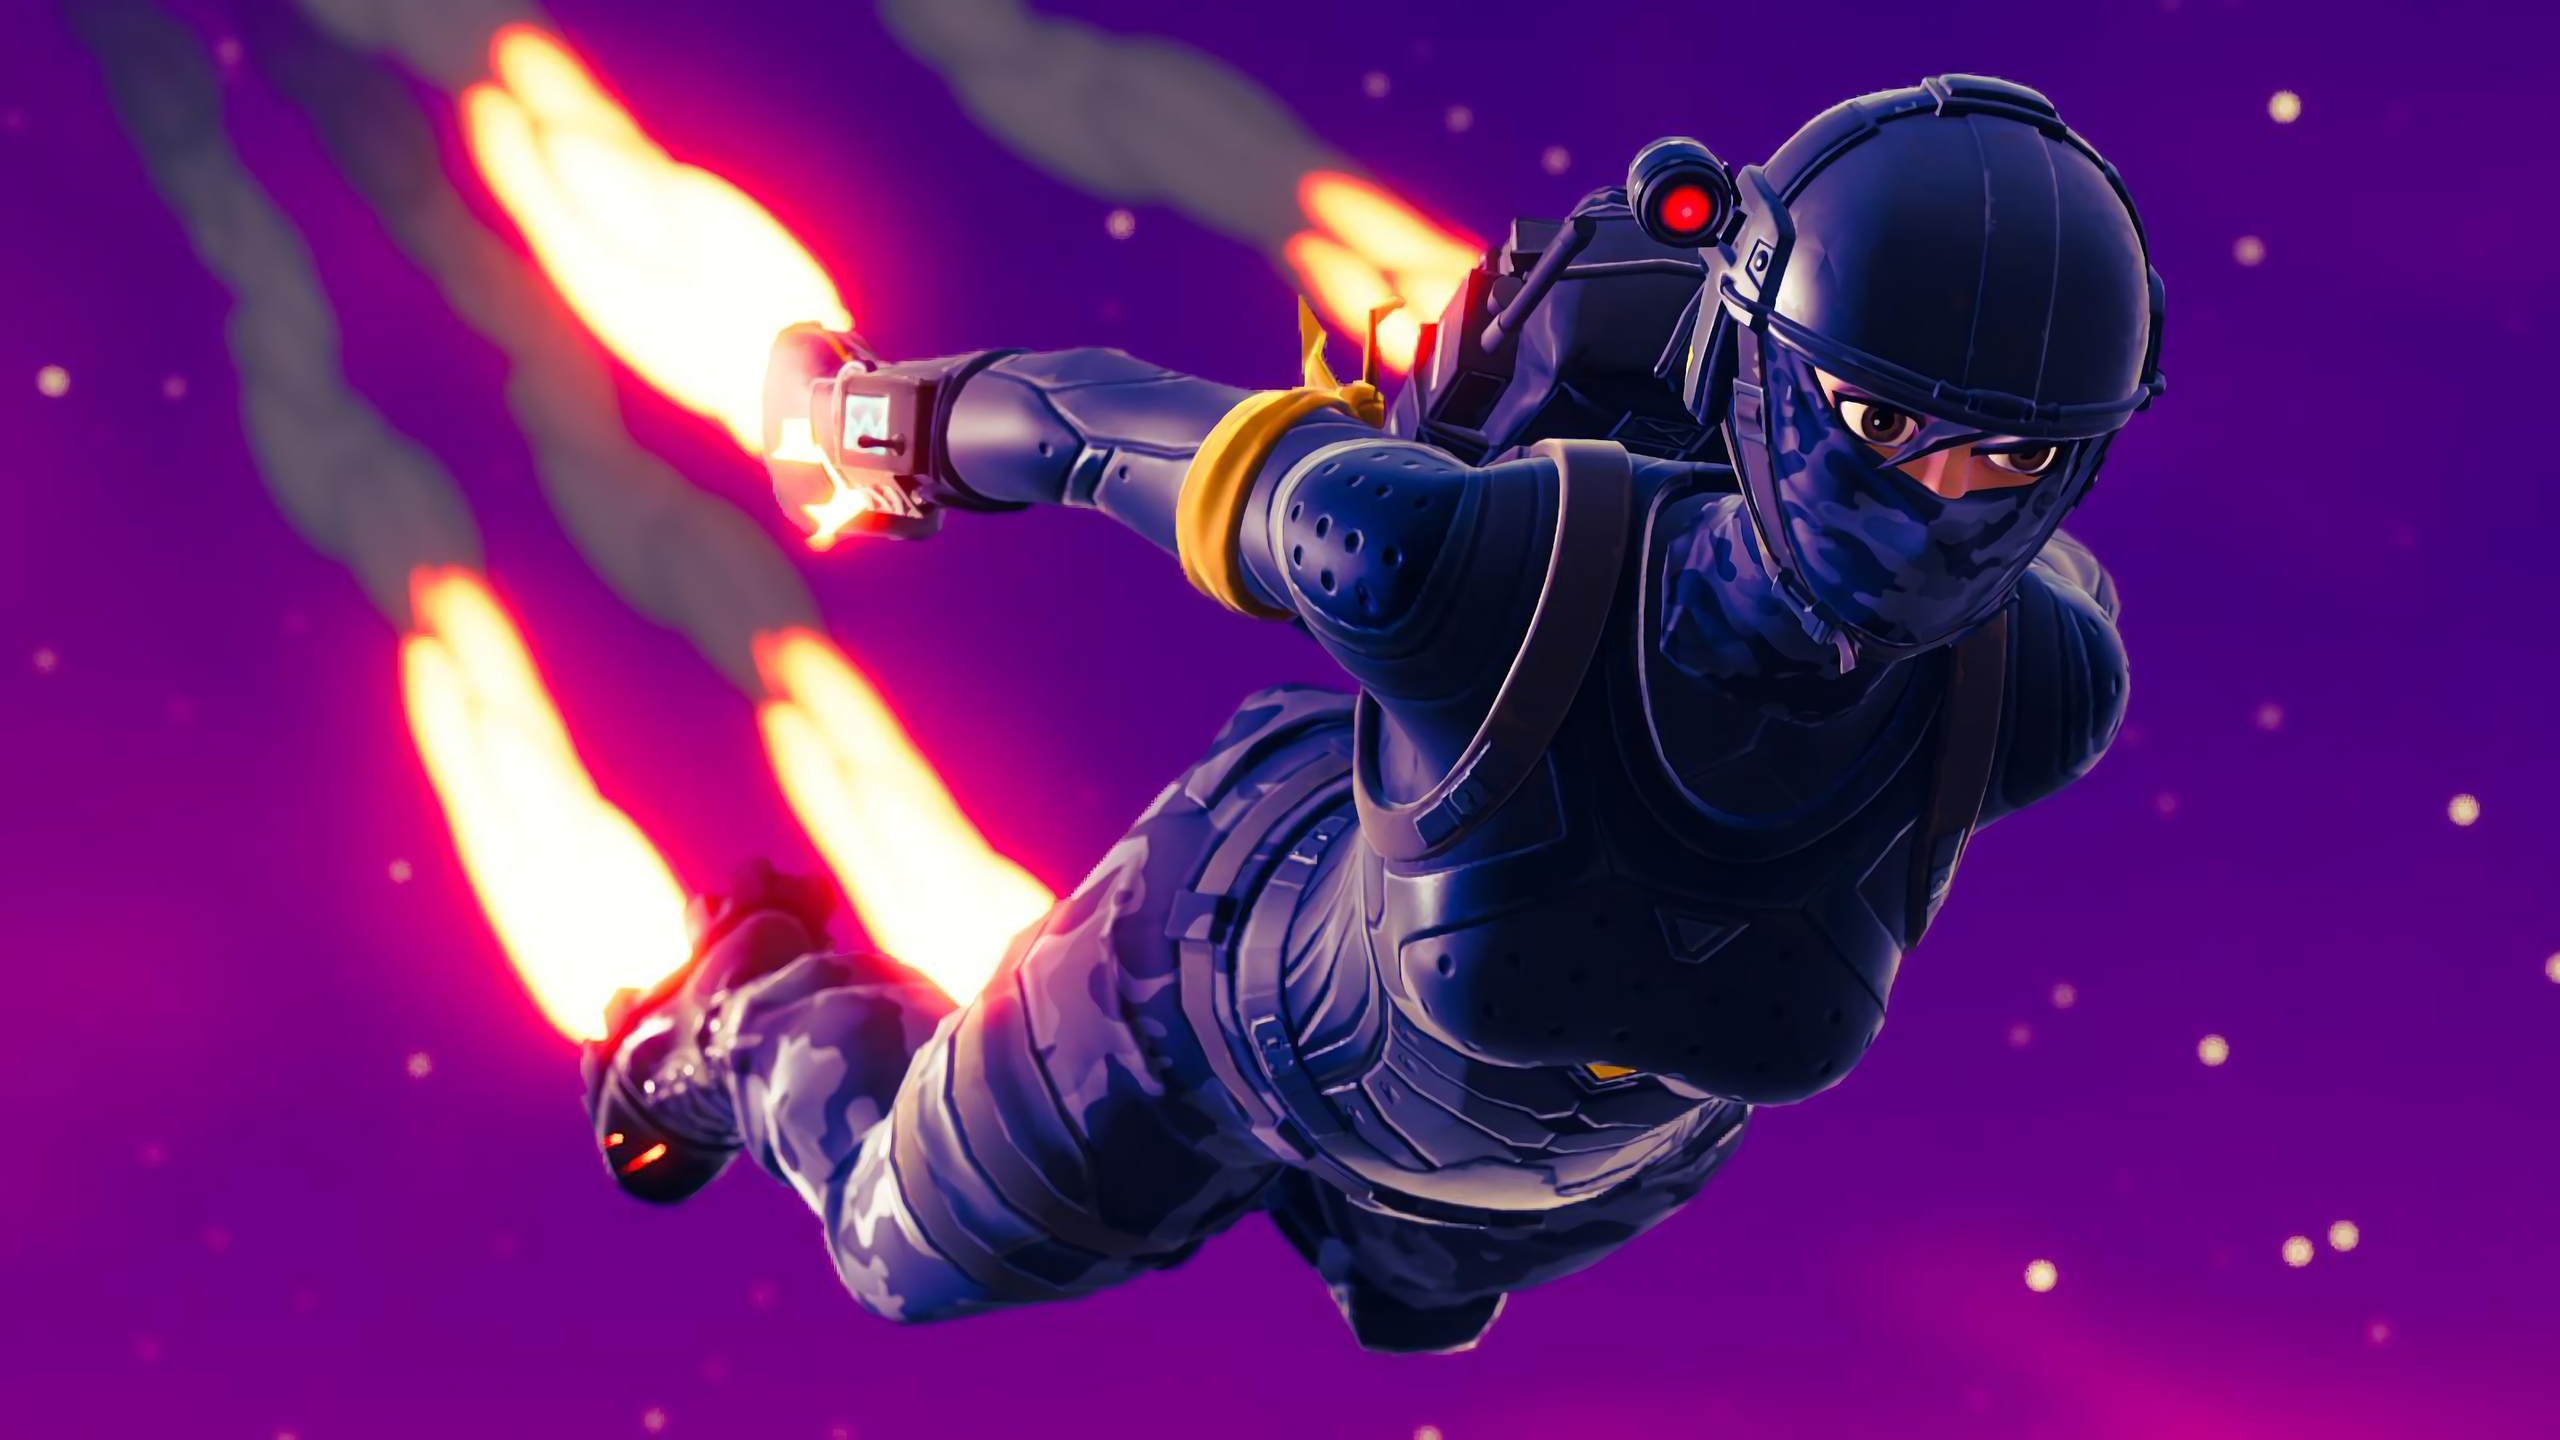 2560x1440 Elite Agent Skydive Fortnite Battle Royale 1440p Resolution Hd 4k Wallpapers Images Backgrounds Photos And Pictures